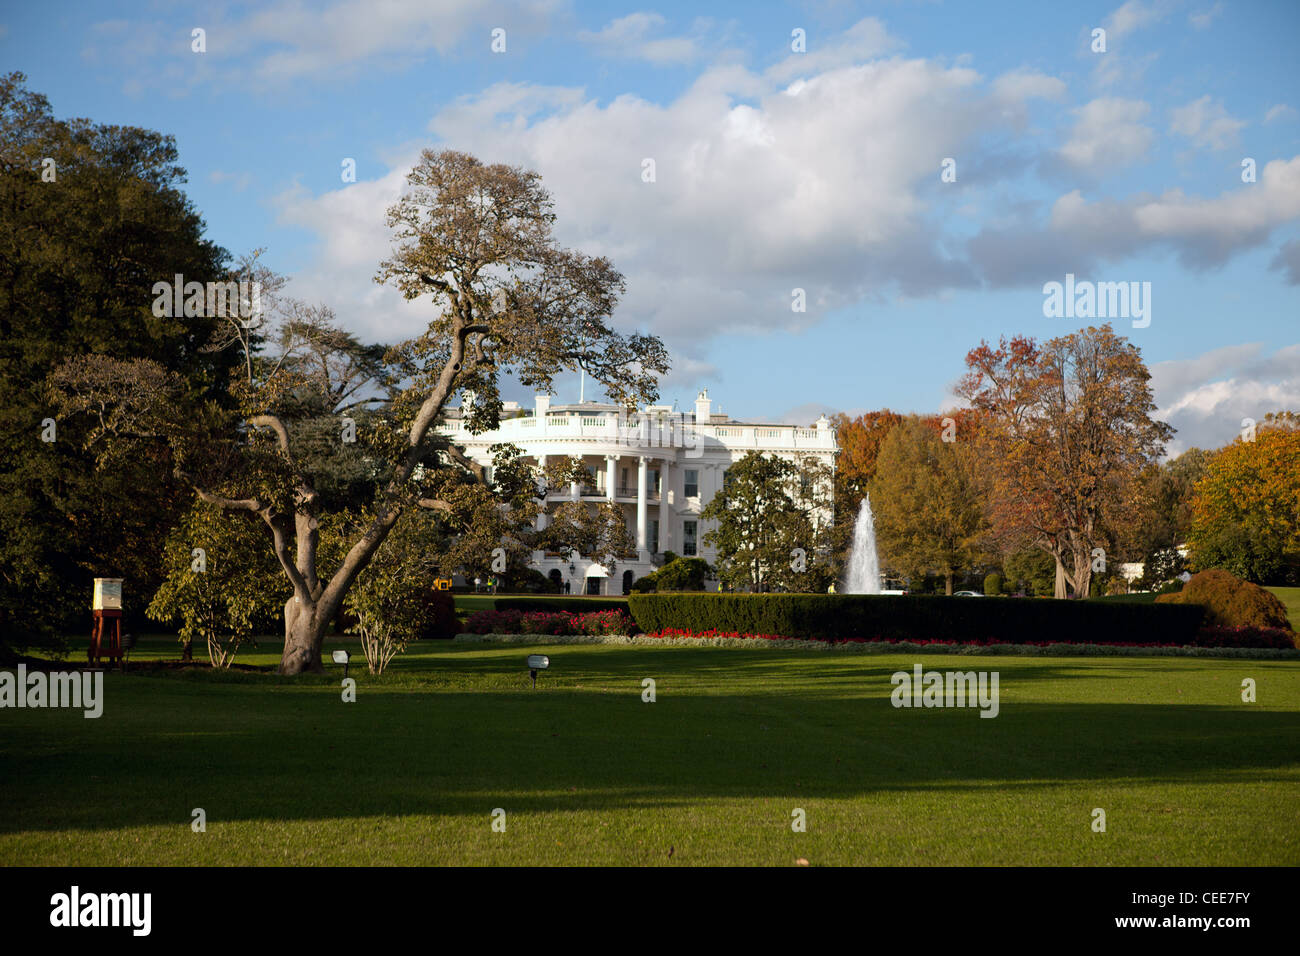 A view of the White House in Washington, DC Stock Photo